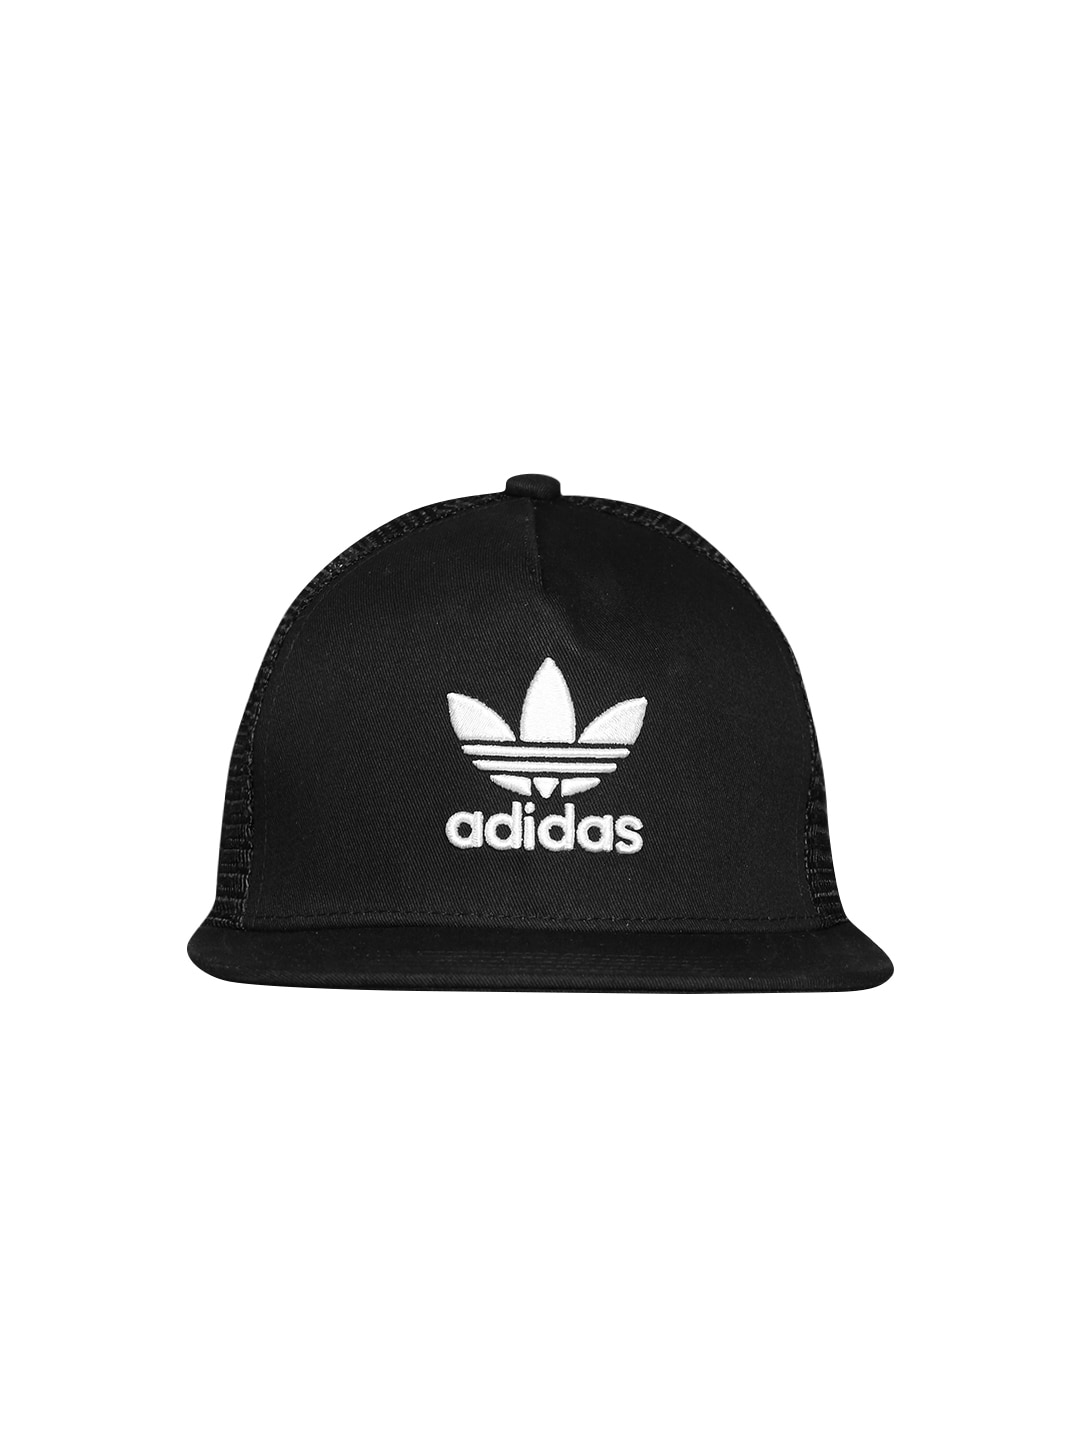 Black Caps - Buy Black Cap Online   Best Price  7d4991f4396